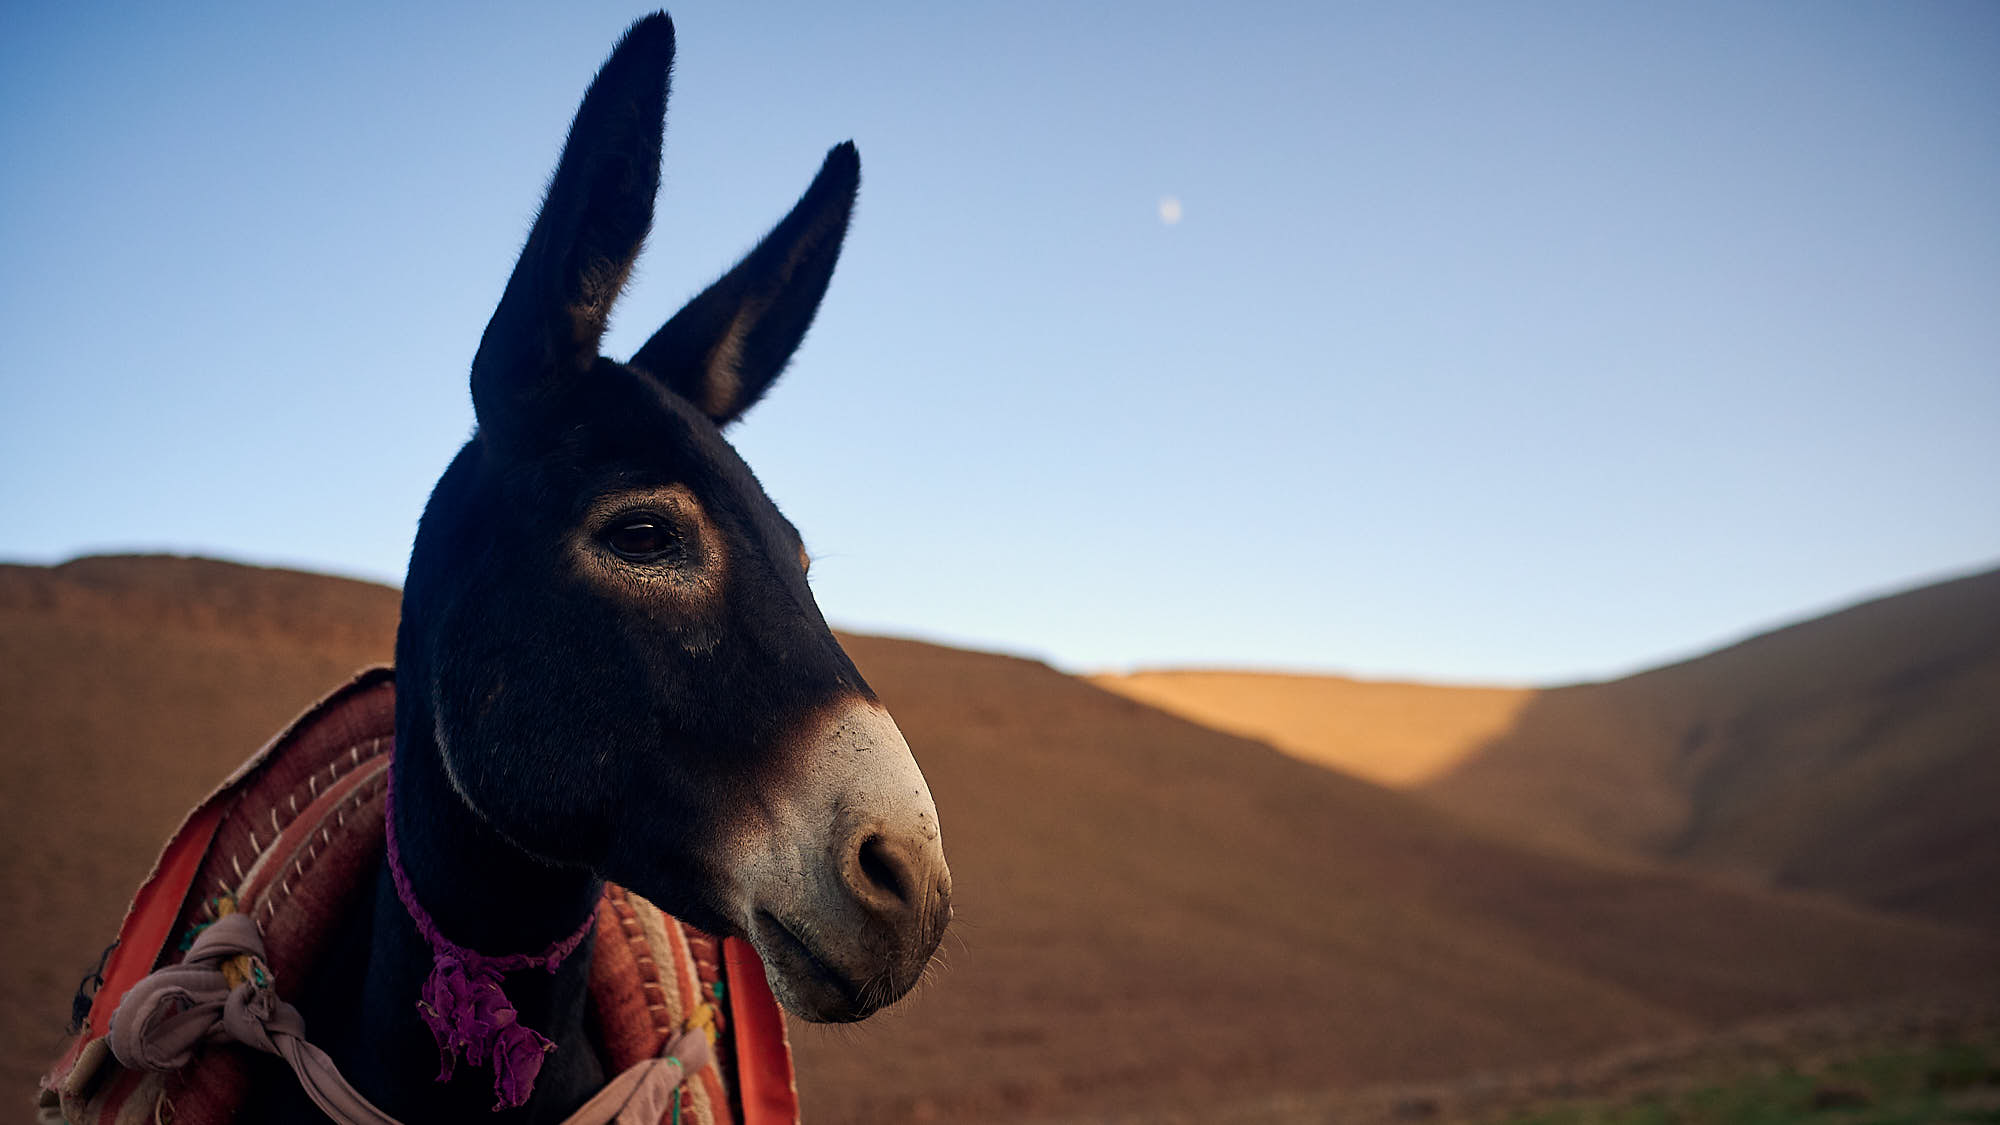 Donkey in Morocco's High Atlas mountain ridge